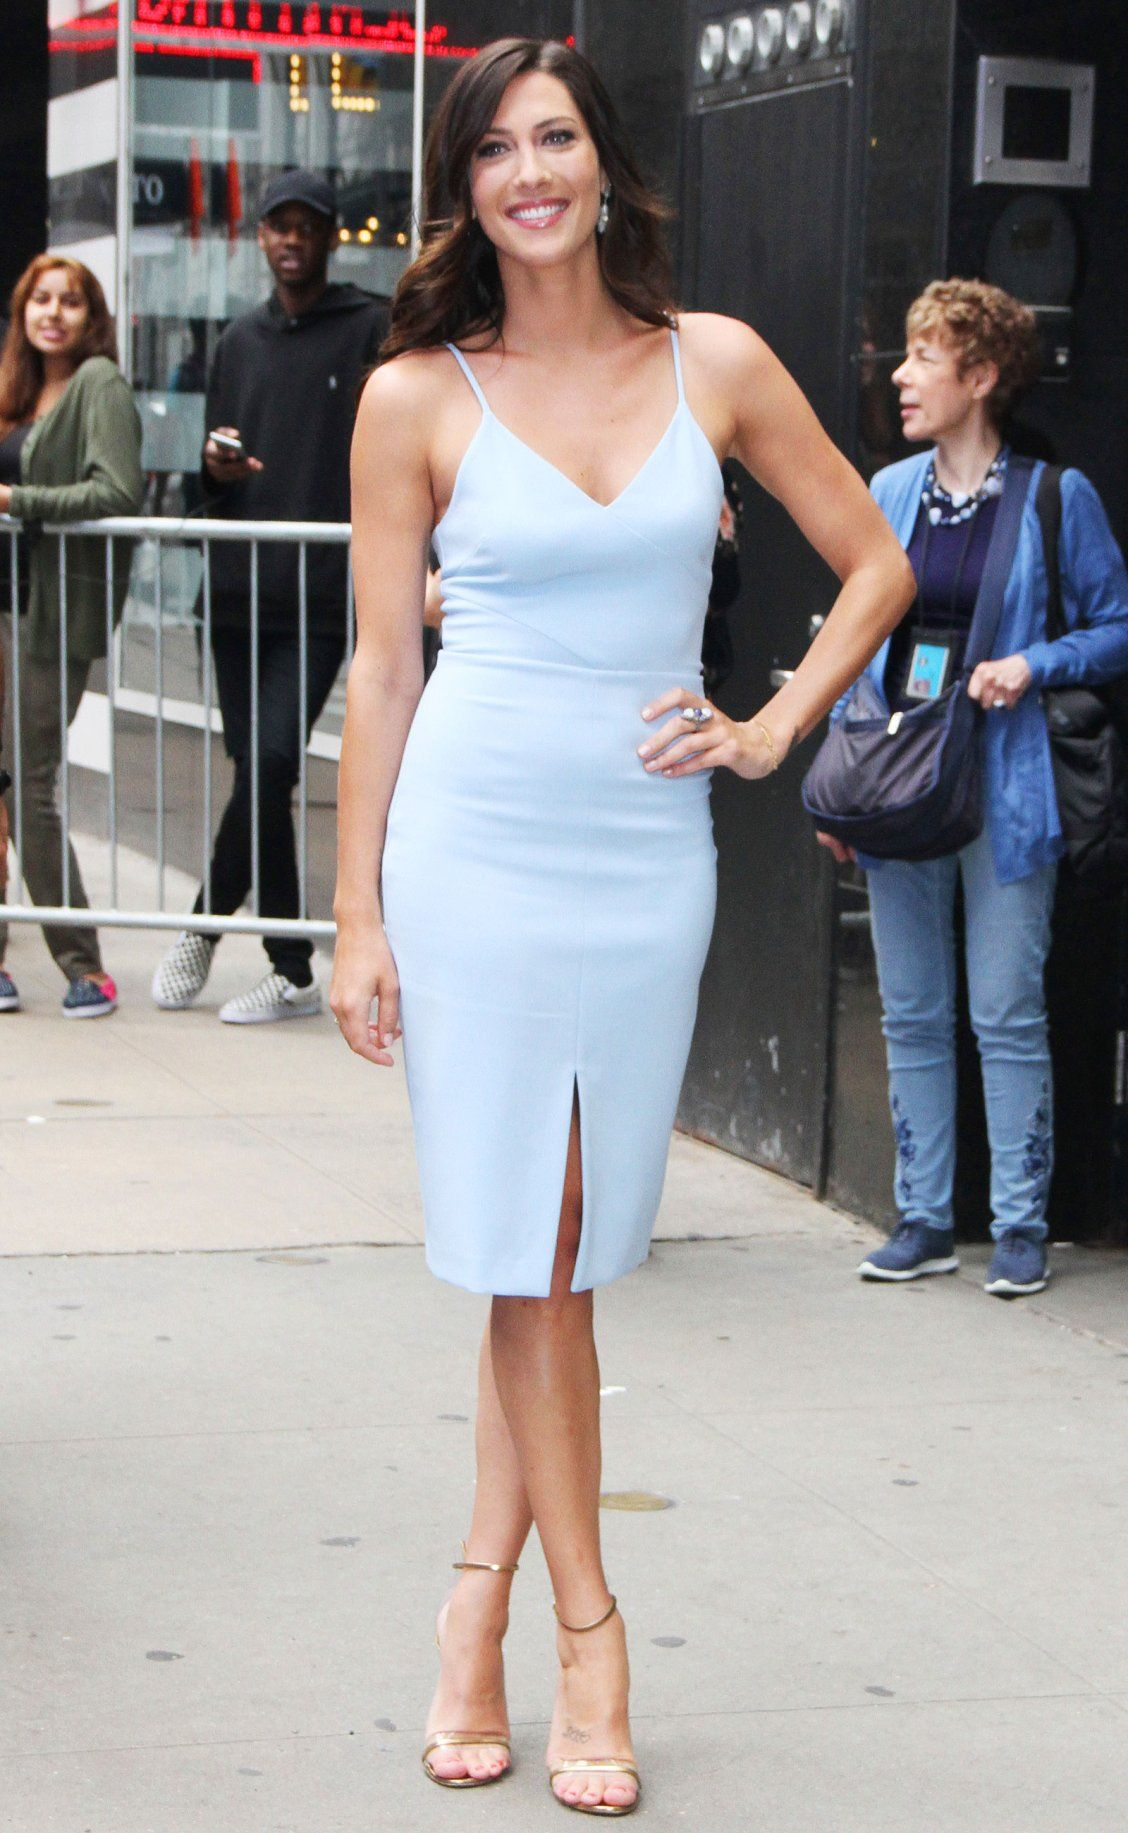 3b7614fa09a3 Blue mini dress - click through for more date outfit ideas from The Bachelorette  Becca Kufrin!